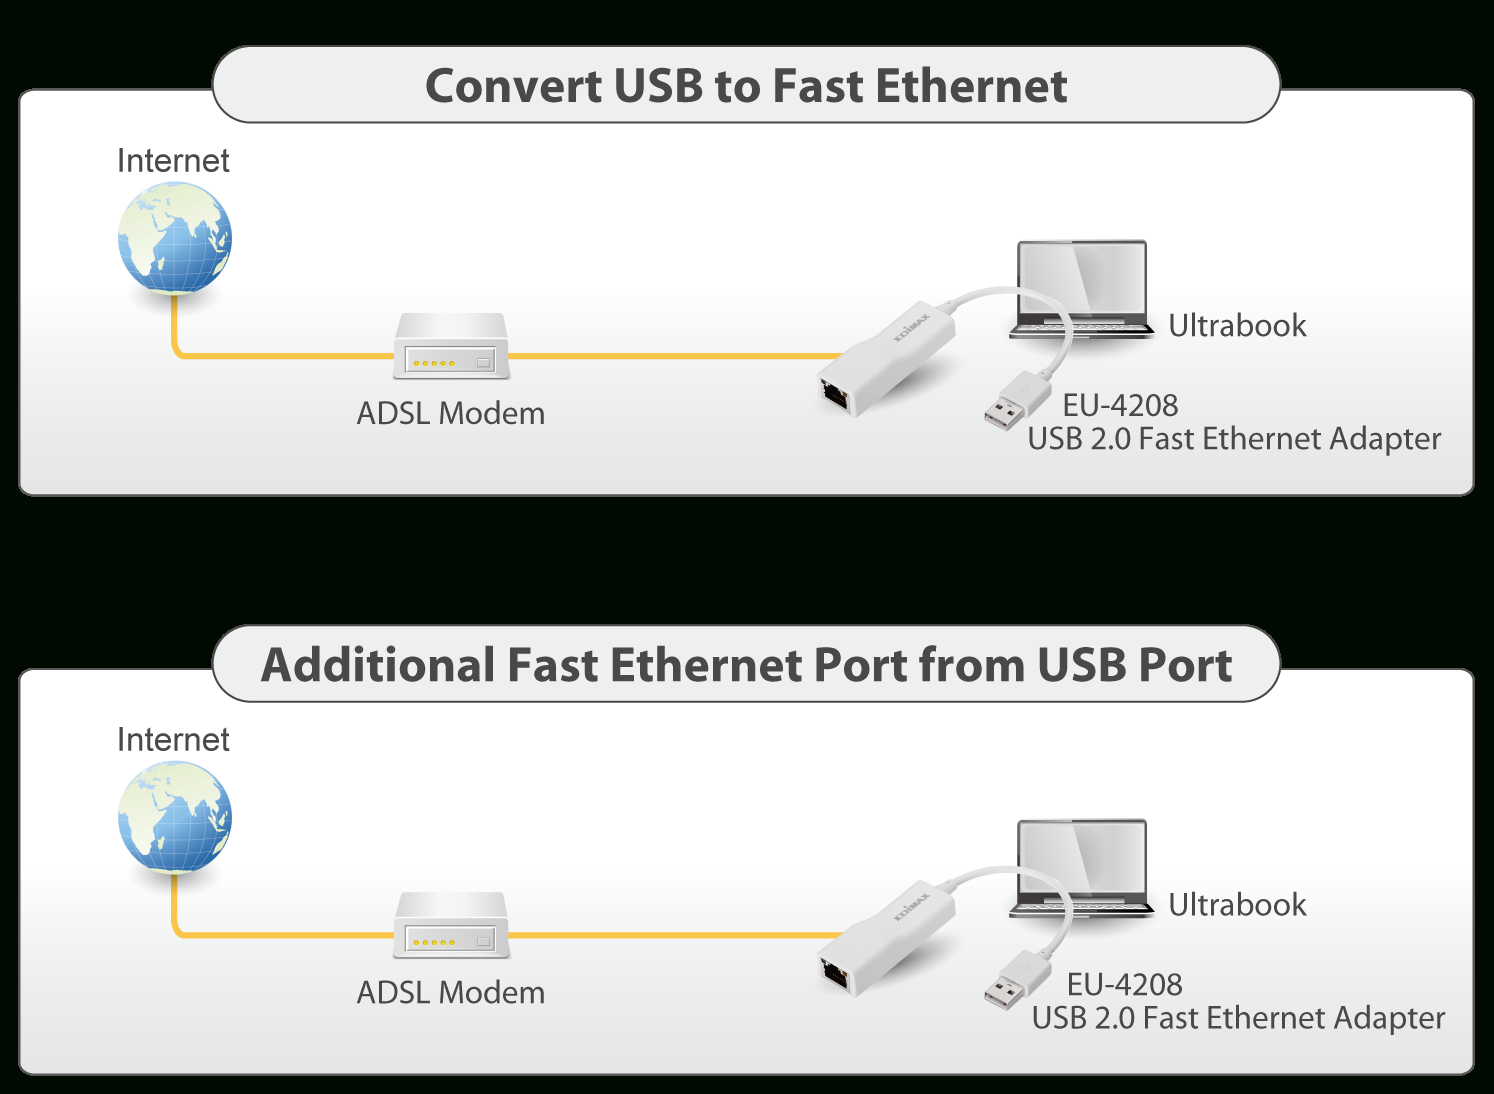 Usb 2.0 Fast Ethernet Adapter | Edimax - Edimax - How To Hookup Eathernet To Usb Wiring Diagram